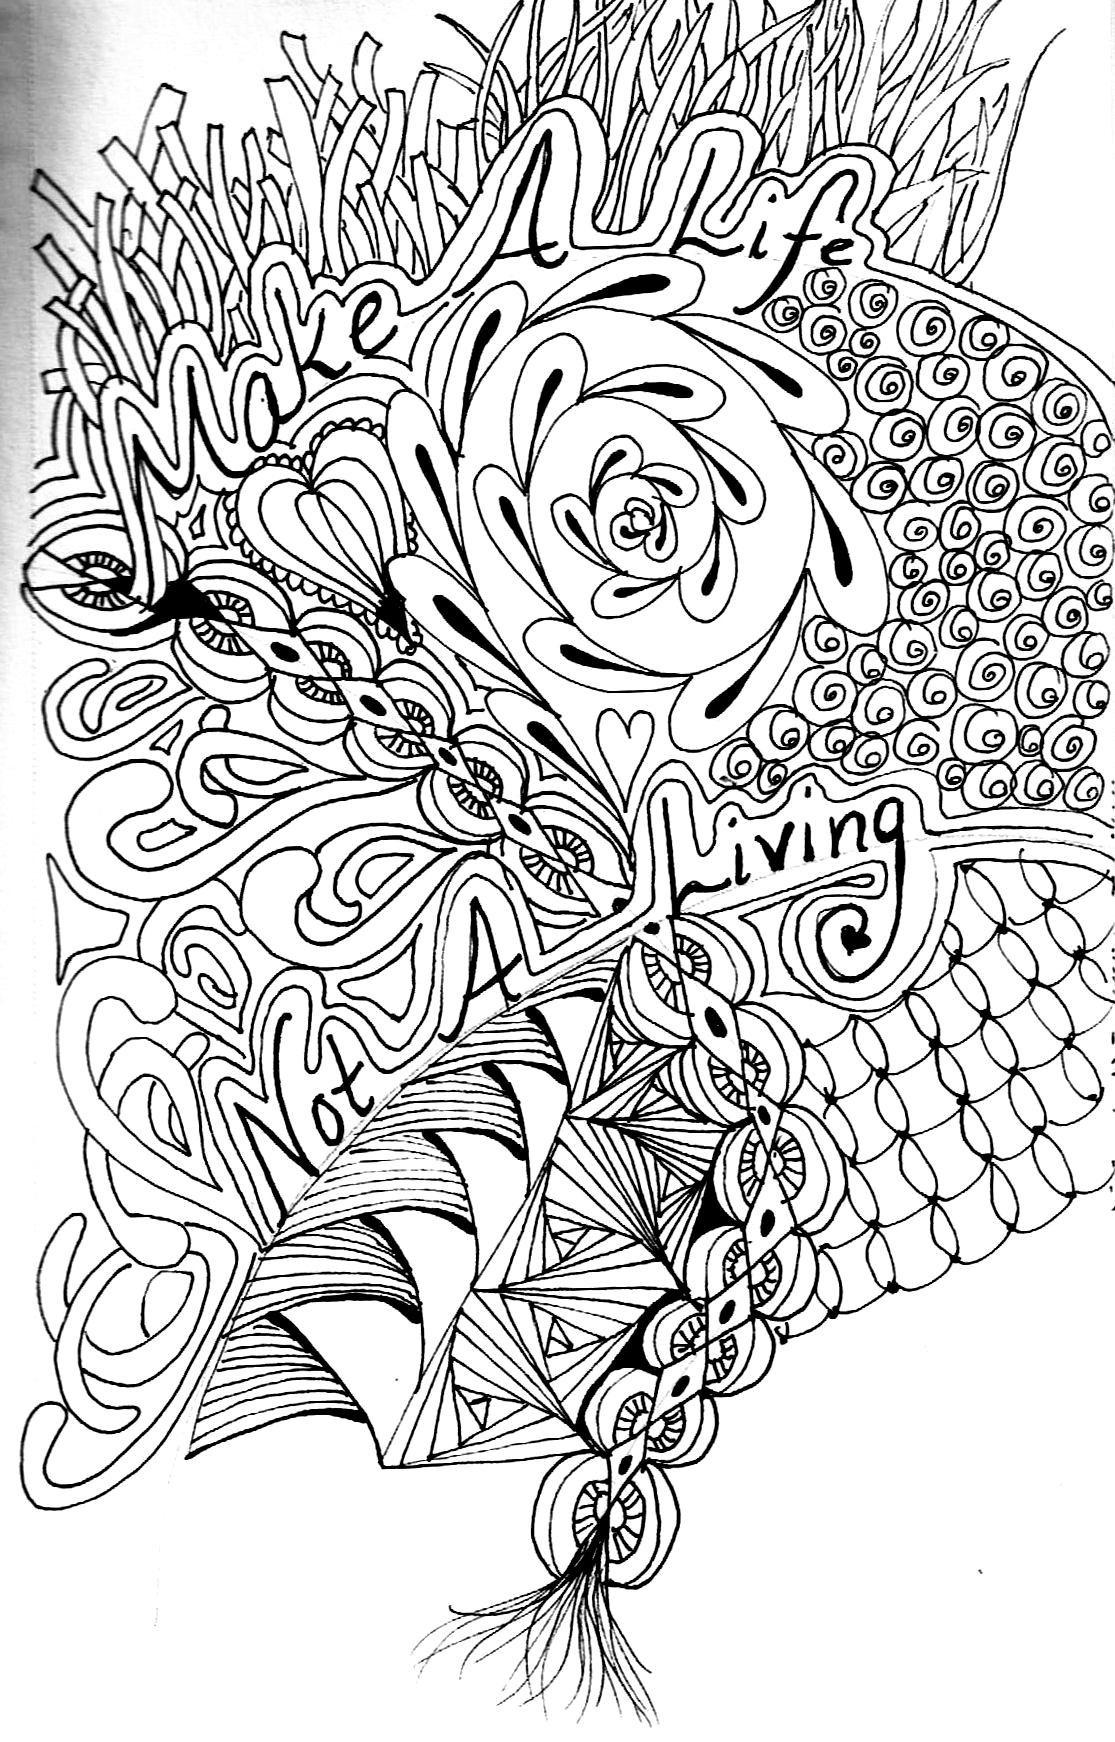 advanced coloring pages online free printable advanced coloring pages coloring home pages online advanced coloring